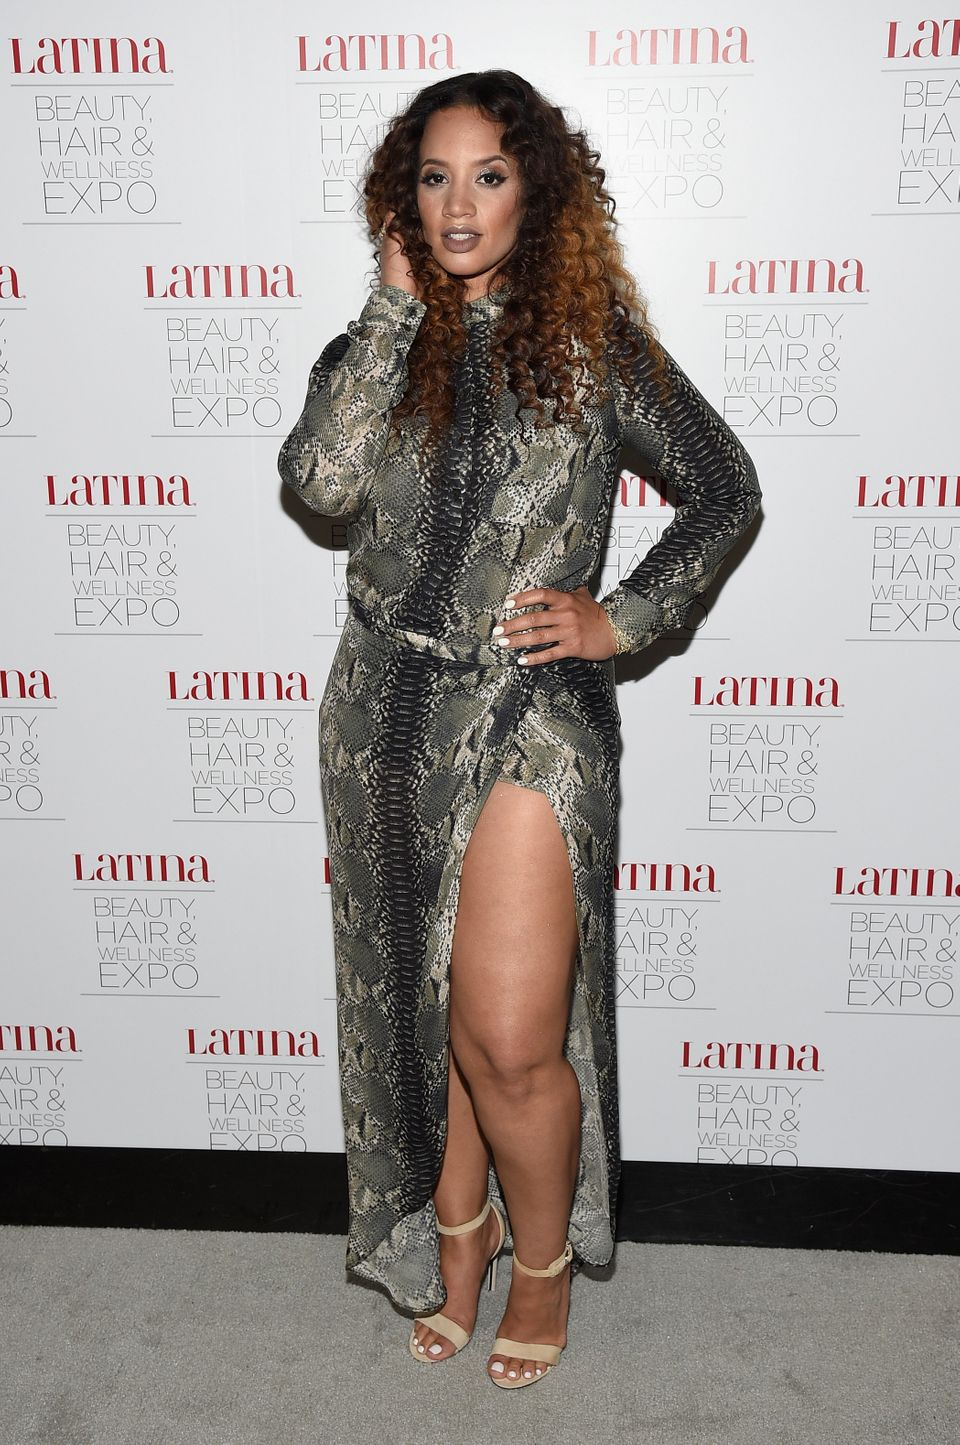 SECAUCUS, NJ - JULY 18:  Actress Dascha Polanco attends the Latina Beauty, Hair & Wellness Expo presented by Latina Media Ven